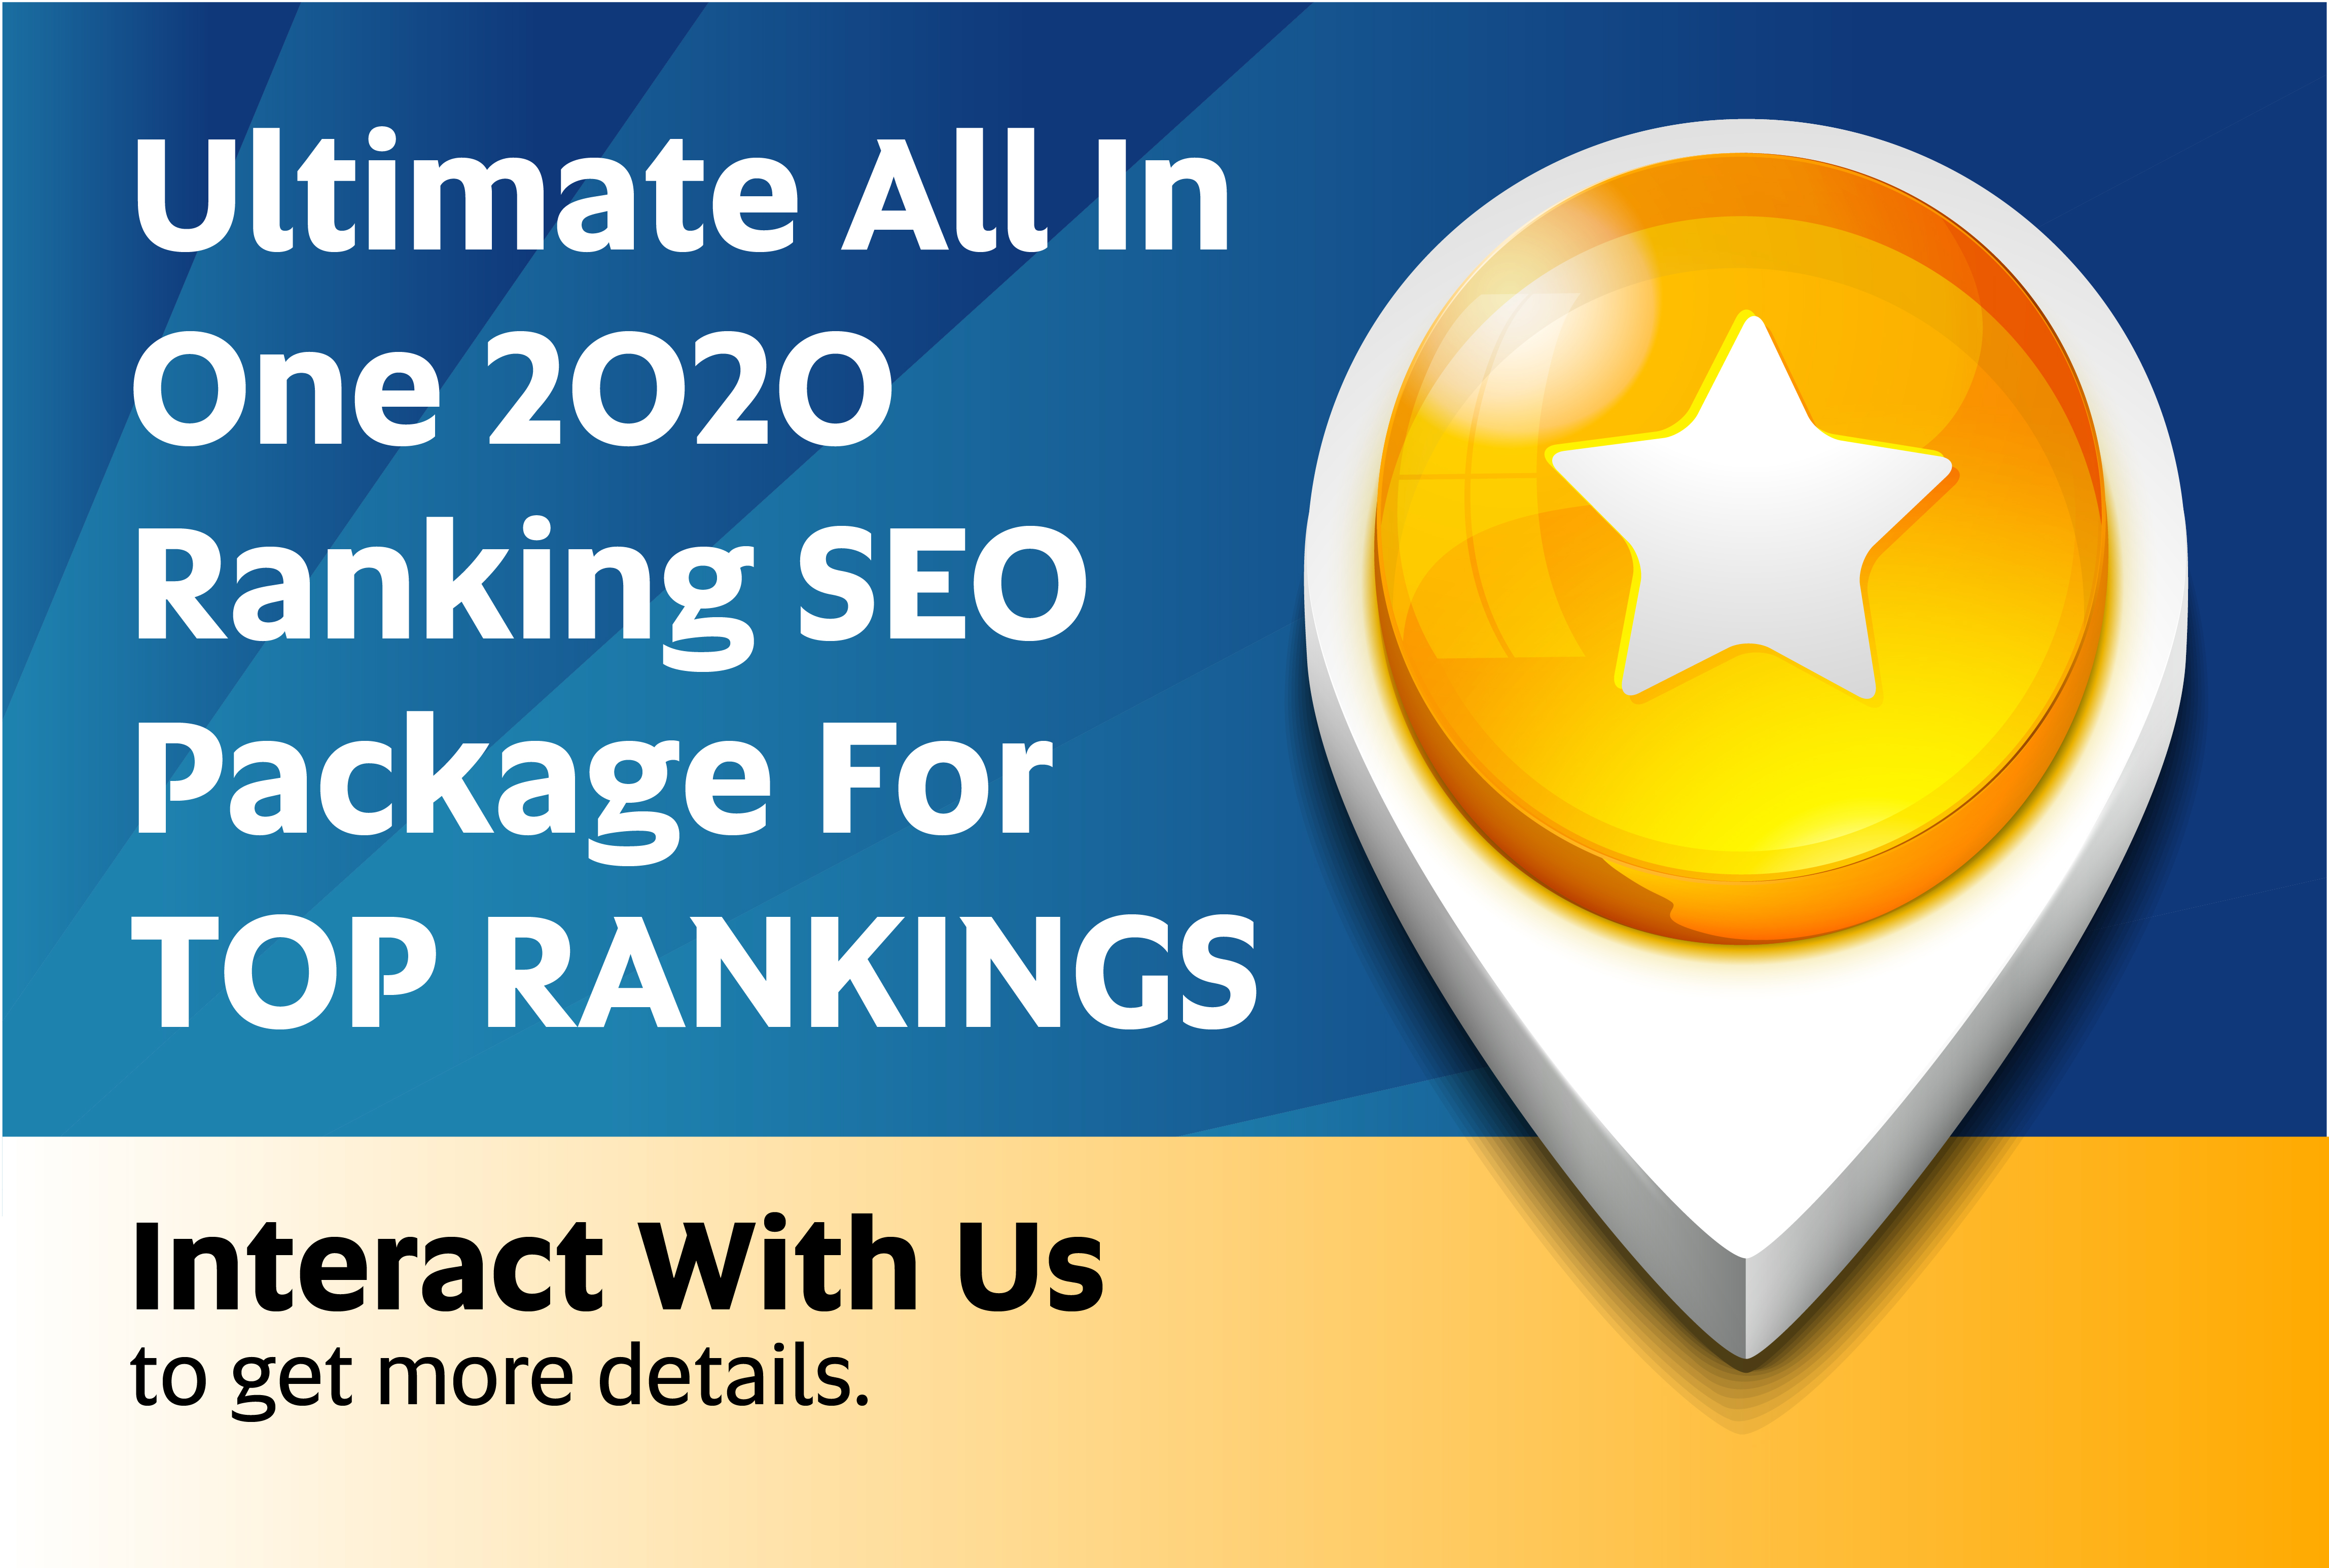 I will rank your website in just 20 days with 2020 ultimate SEO ranking package